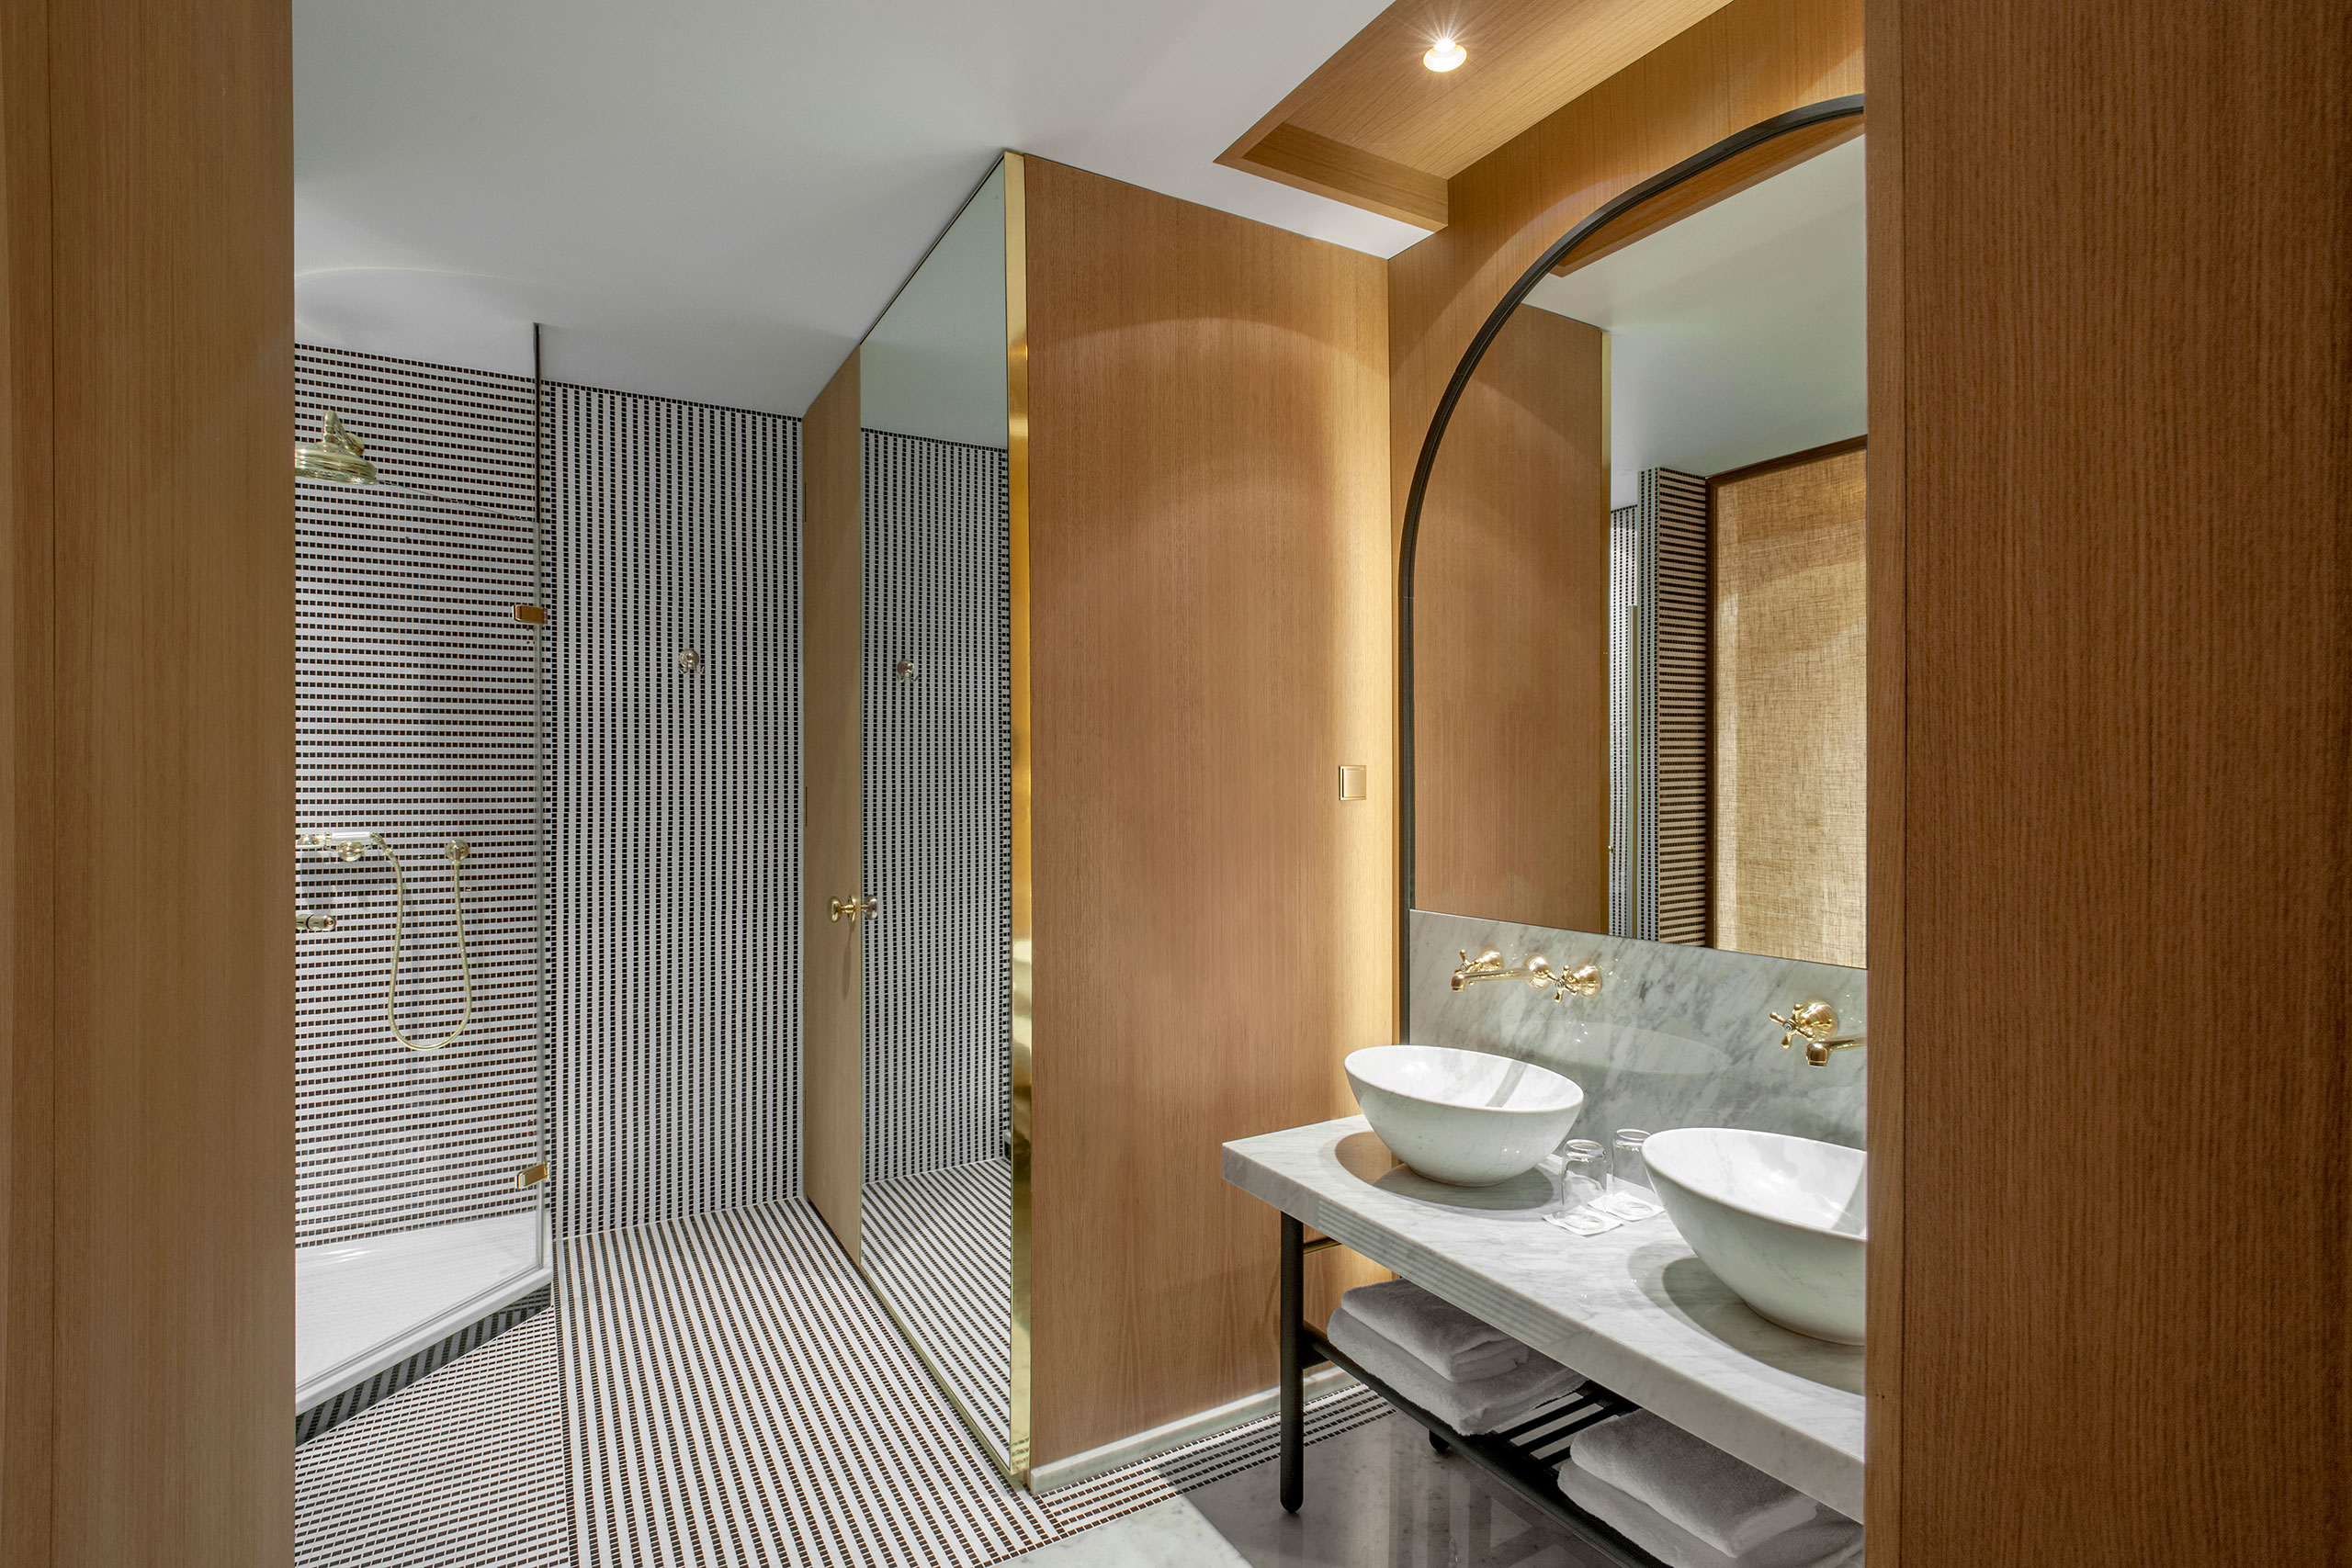 Hotel Vernet Paris : the refurbished h tel vernet in paris by fran ois champsaur yatzer ~ Melissatoandfro.com Idées de Décoration